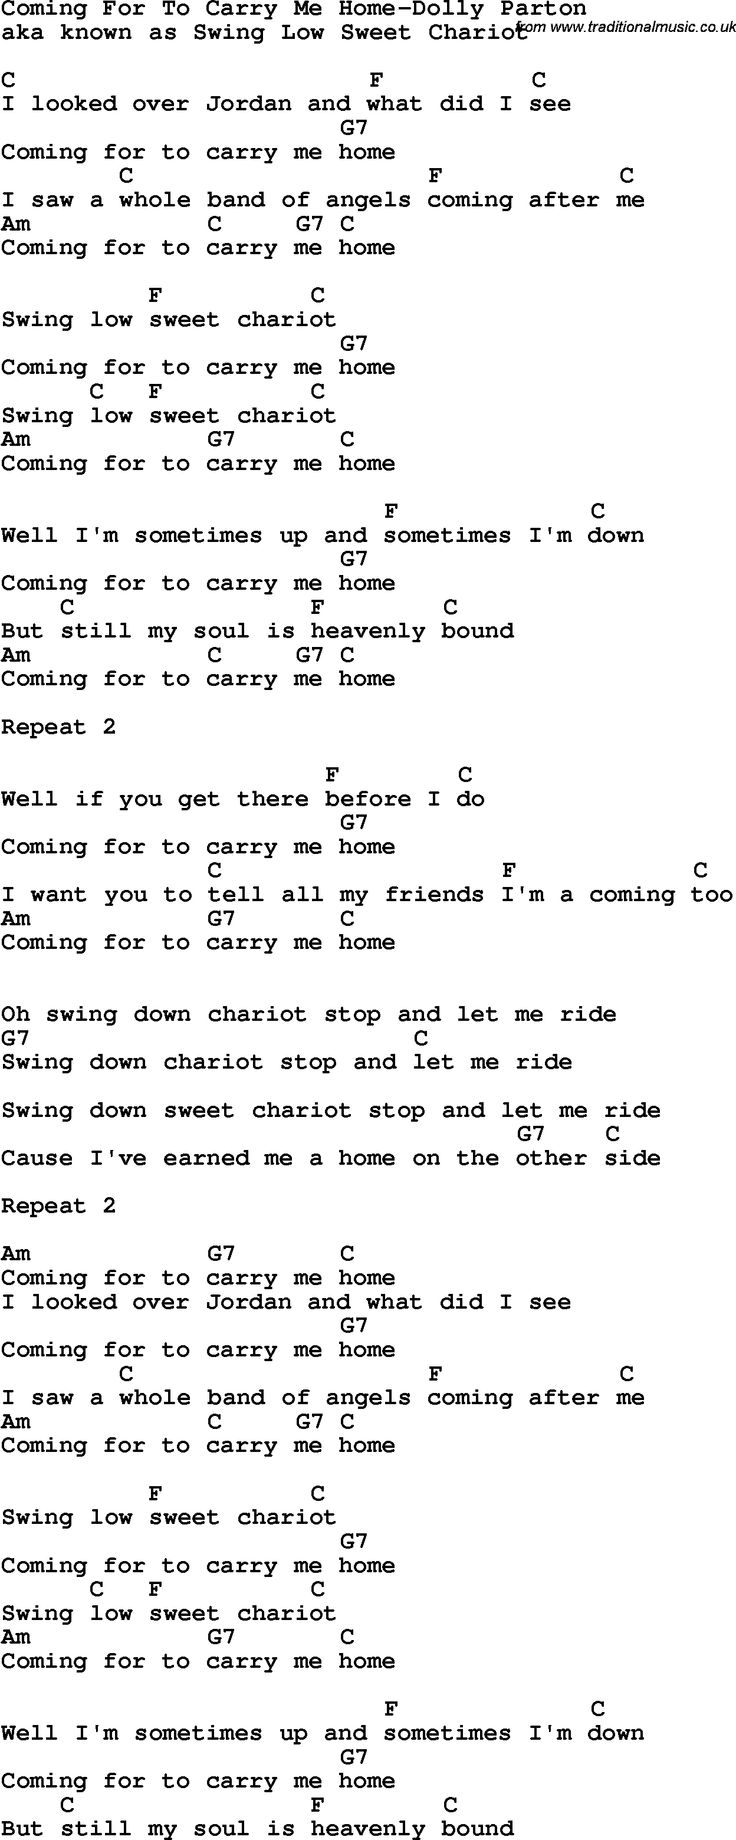 Country, Southern and Bluegrass Gospel Song Coming For To Carry Me Home-Dolly Parton lyrics and chords